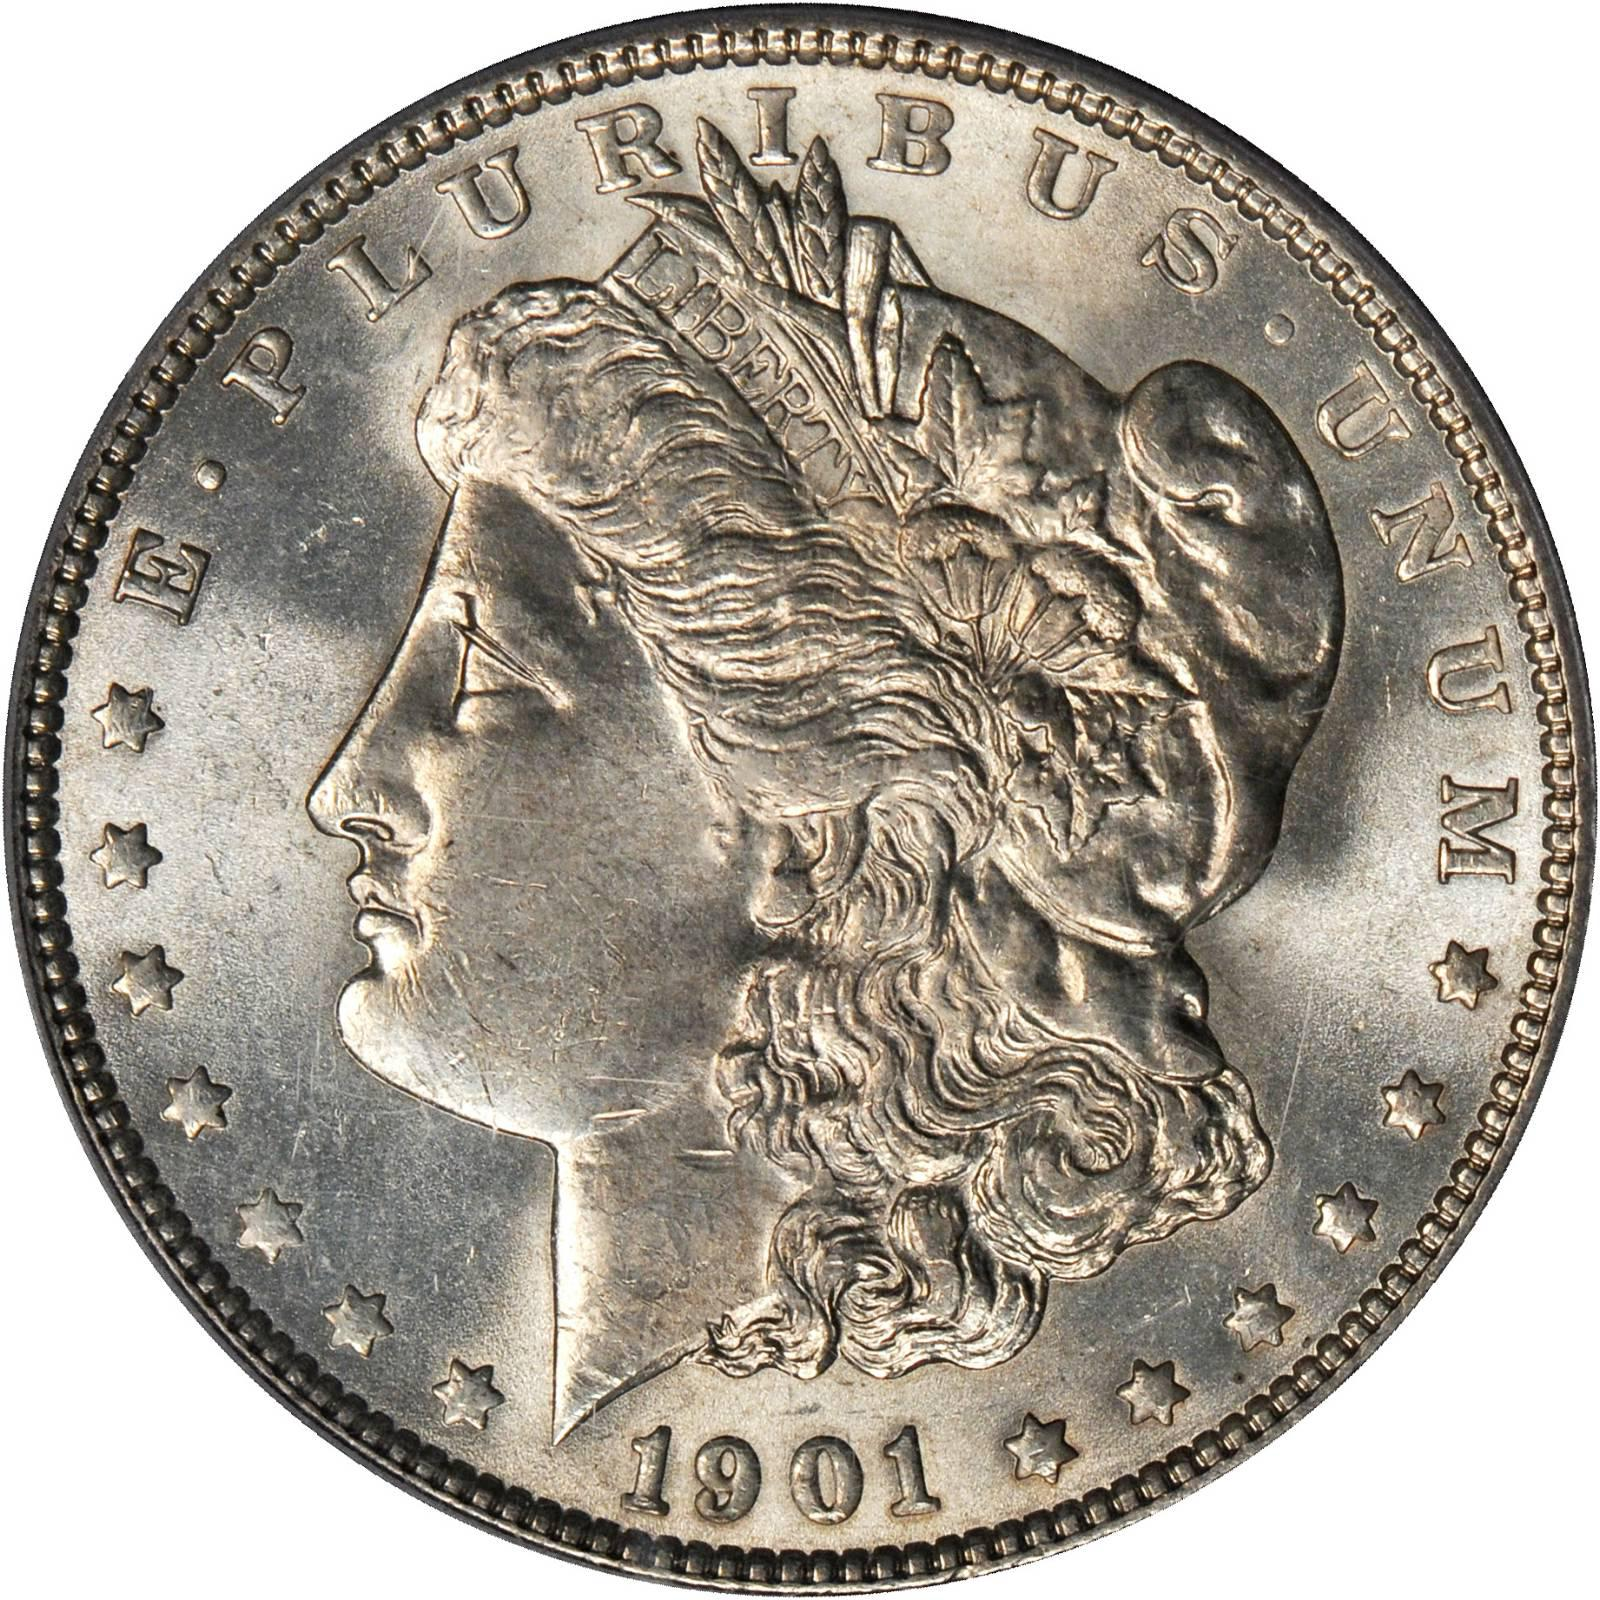 Value Of 1901 Morgan Dollar Rare Silver Dollar Buyers